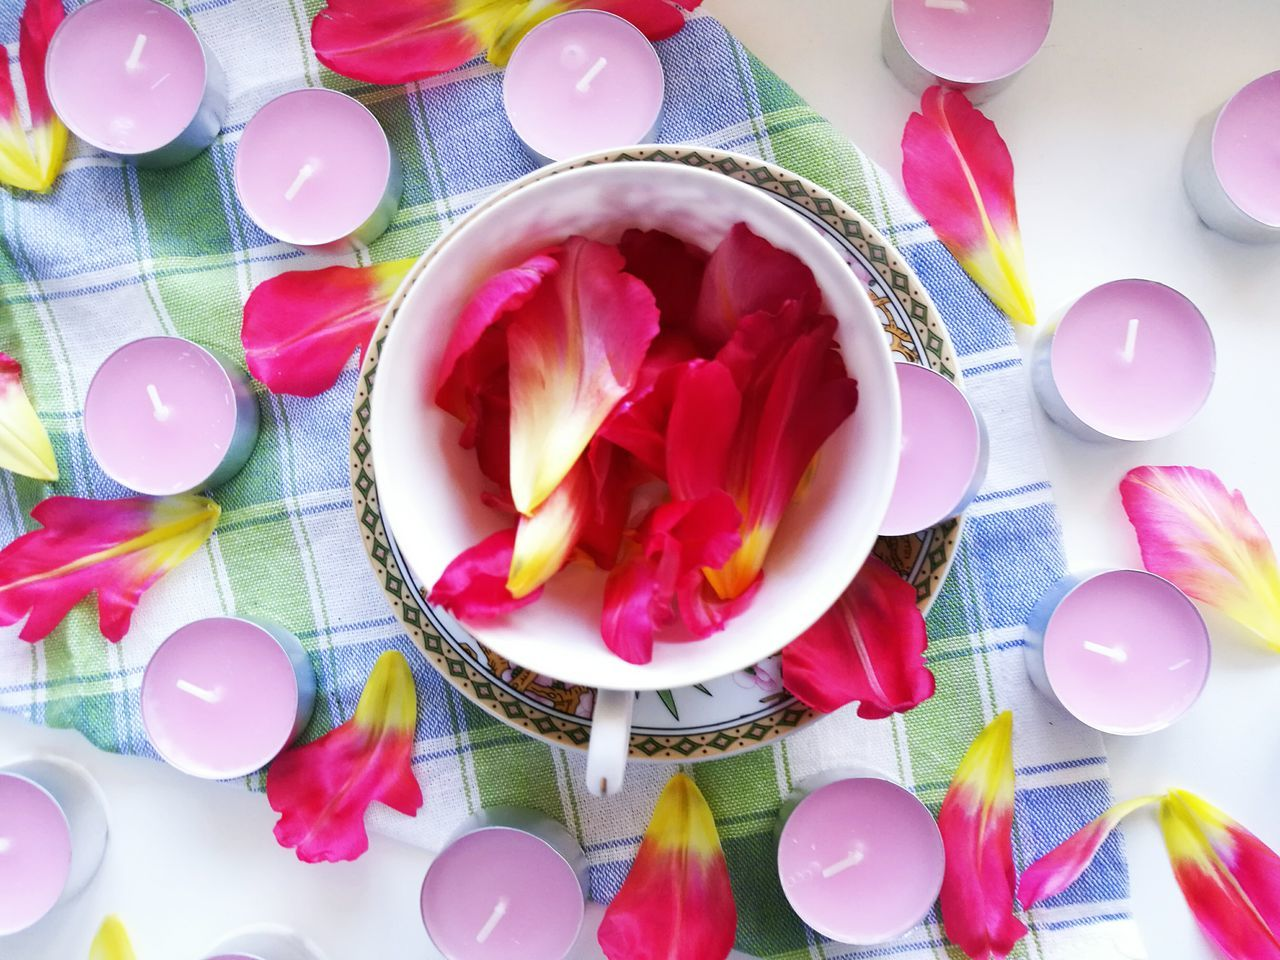 Pink Color Red Celebration Plate No People Flower Indoors  Petals🌸 Floral Crocery Morning Tea Cup Composition Candles.❤ Millennial Pink Millennial Pink Millennial Pink